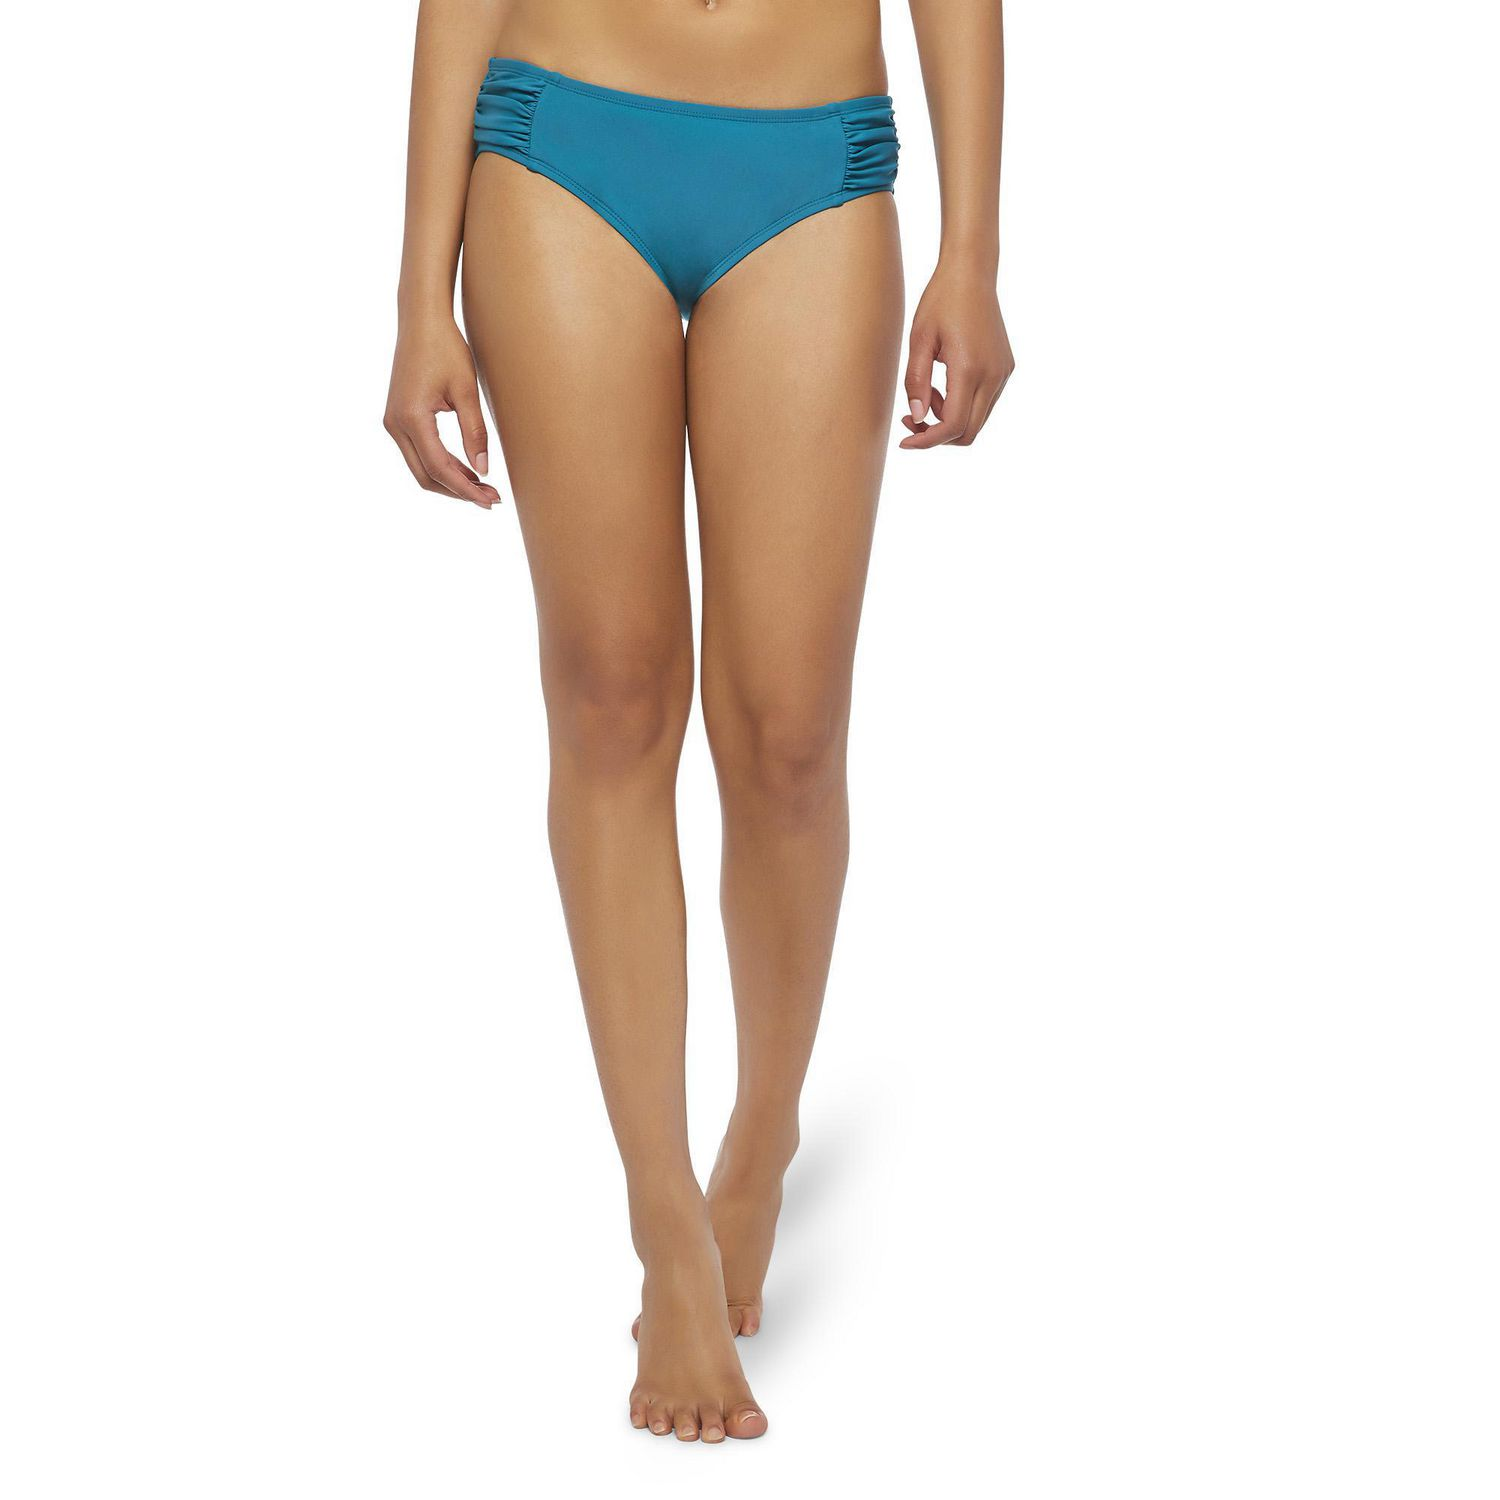 e00c3267a5e George Women's Scrunch Side Panel Bikini Bottoms - image 1 of 6 zoomed image